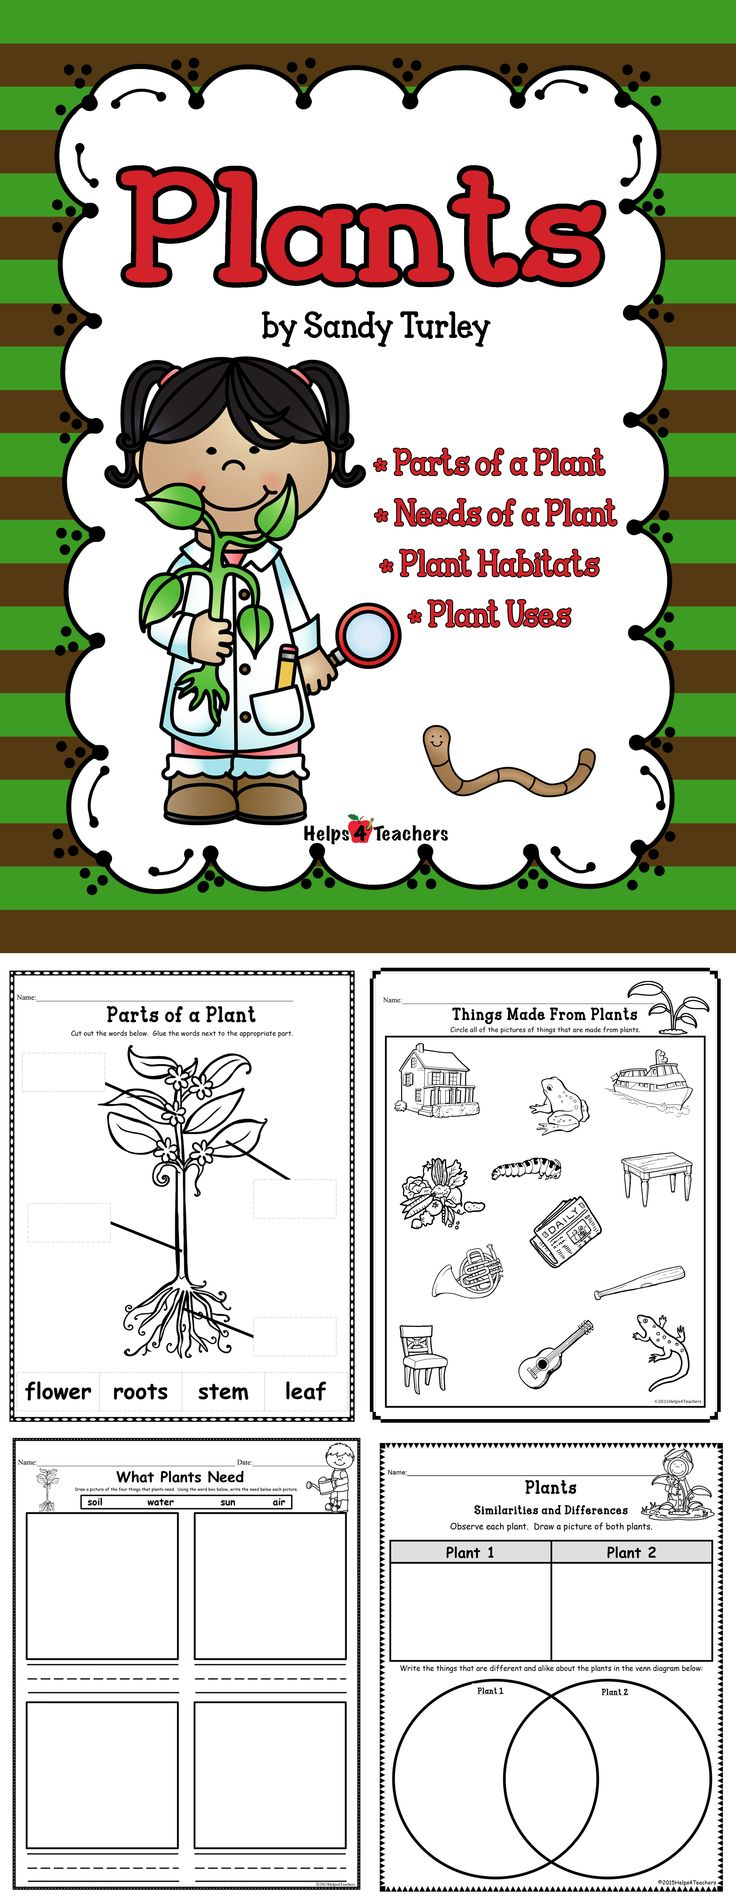 $ AWESOME! This packet includes 8 activity pages that will enhance the teaching of the following plant topics: - Things Made From Plants - Needs of a Plant - Parts of a Plant - Jobs of the Parts of a Plant - Where Plants are Found (Plant habitats) - Foods That Come From Plants - Observation of Two Plants: Similarities and Differences